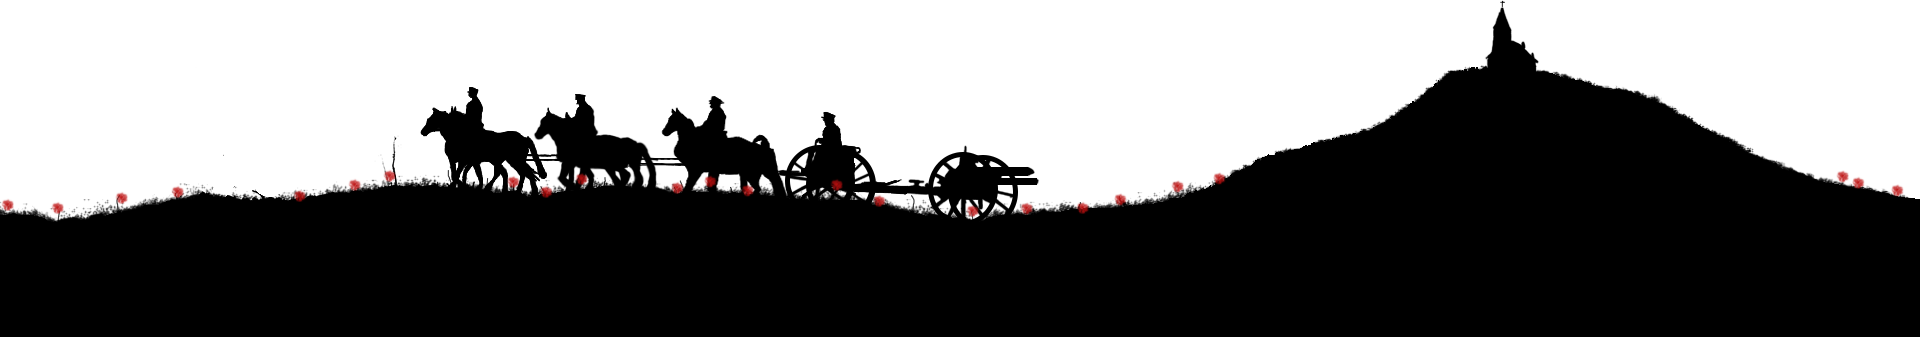 graphic of artillery cavalry silhouette on poppy field